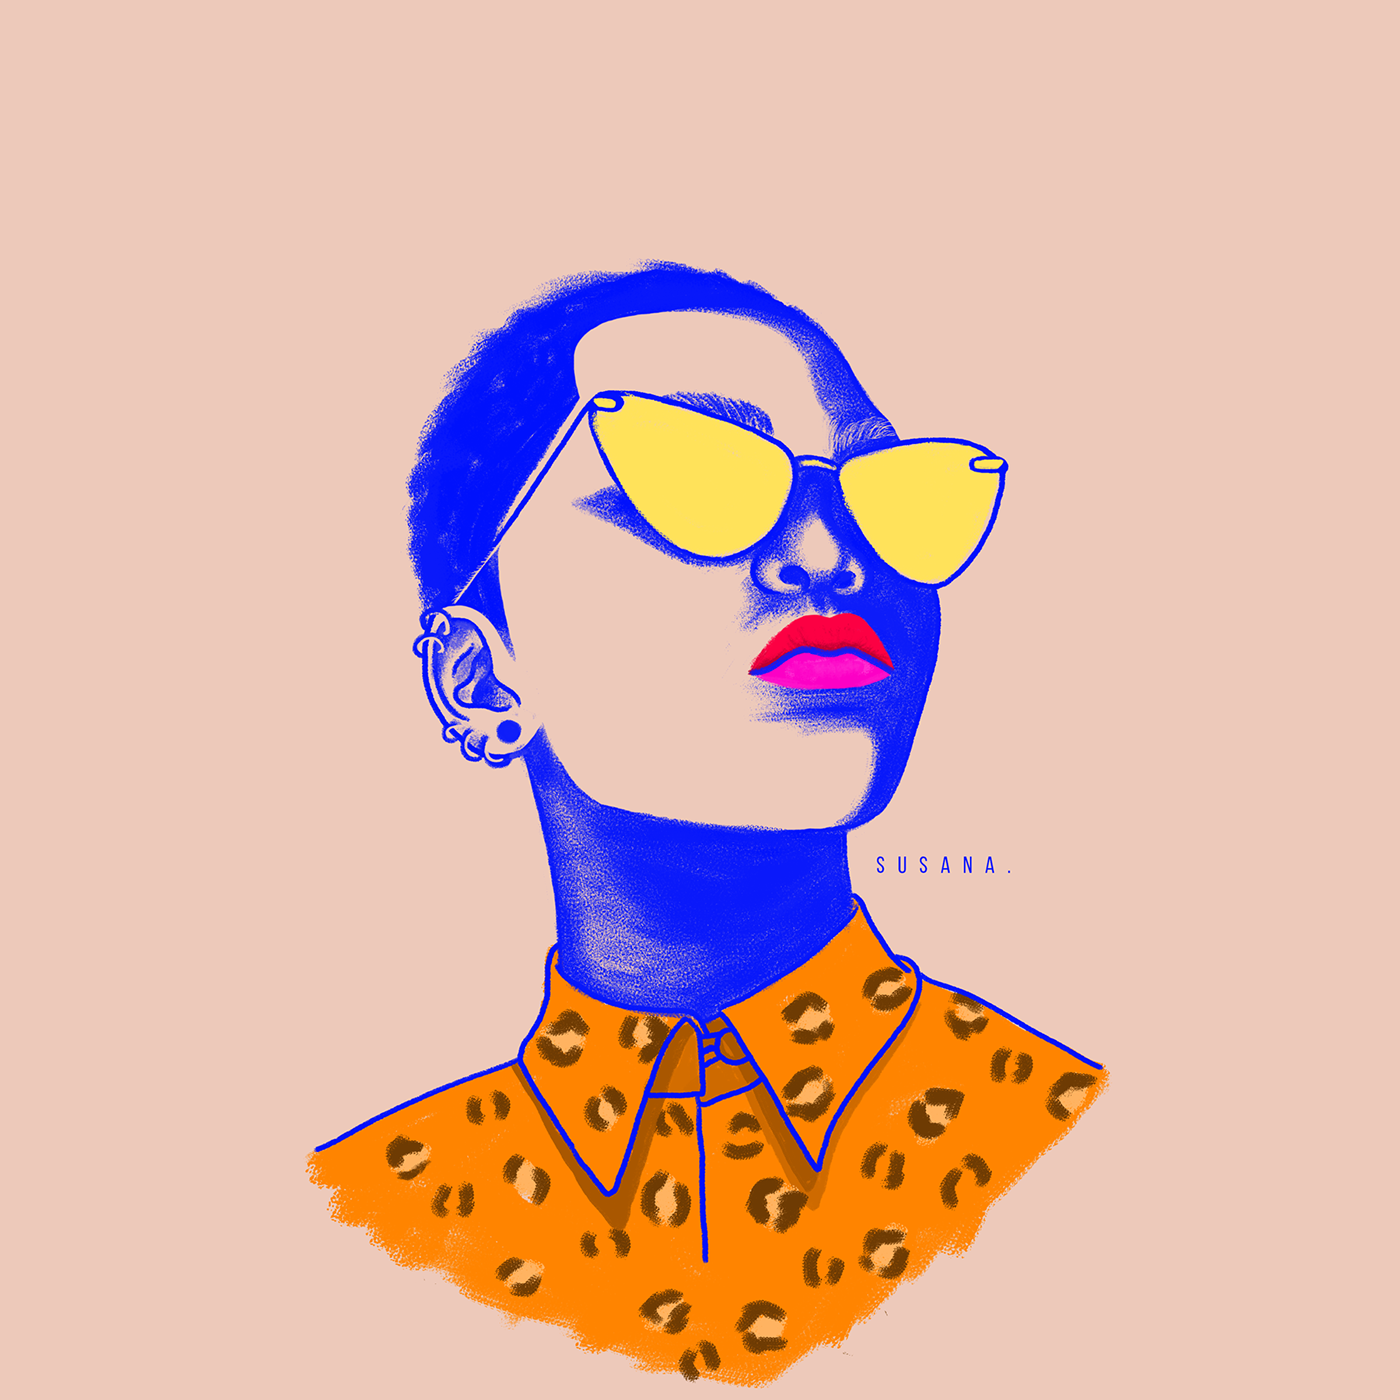 ILLUSTRATION ,Illustrator,photoshop,color,womancolor,illustrationwoman,colombia